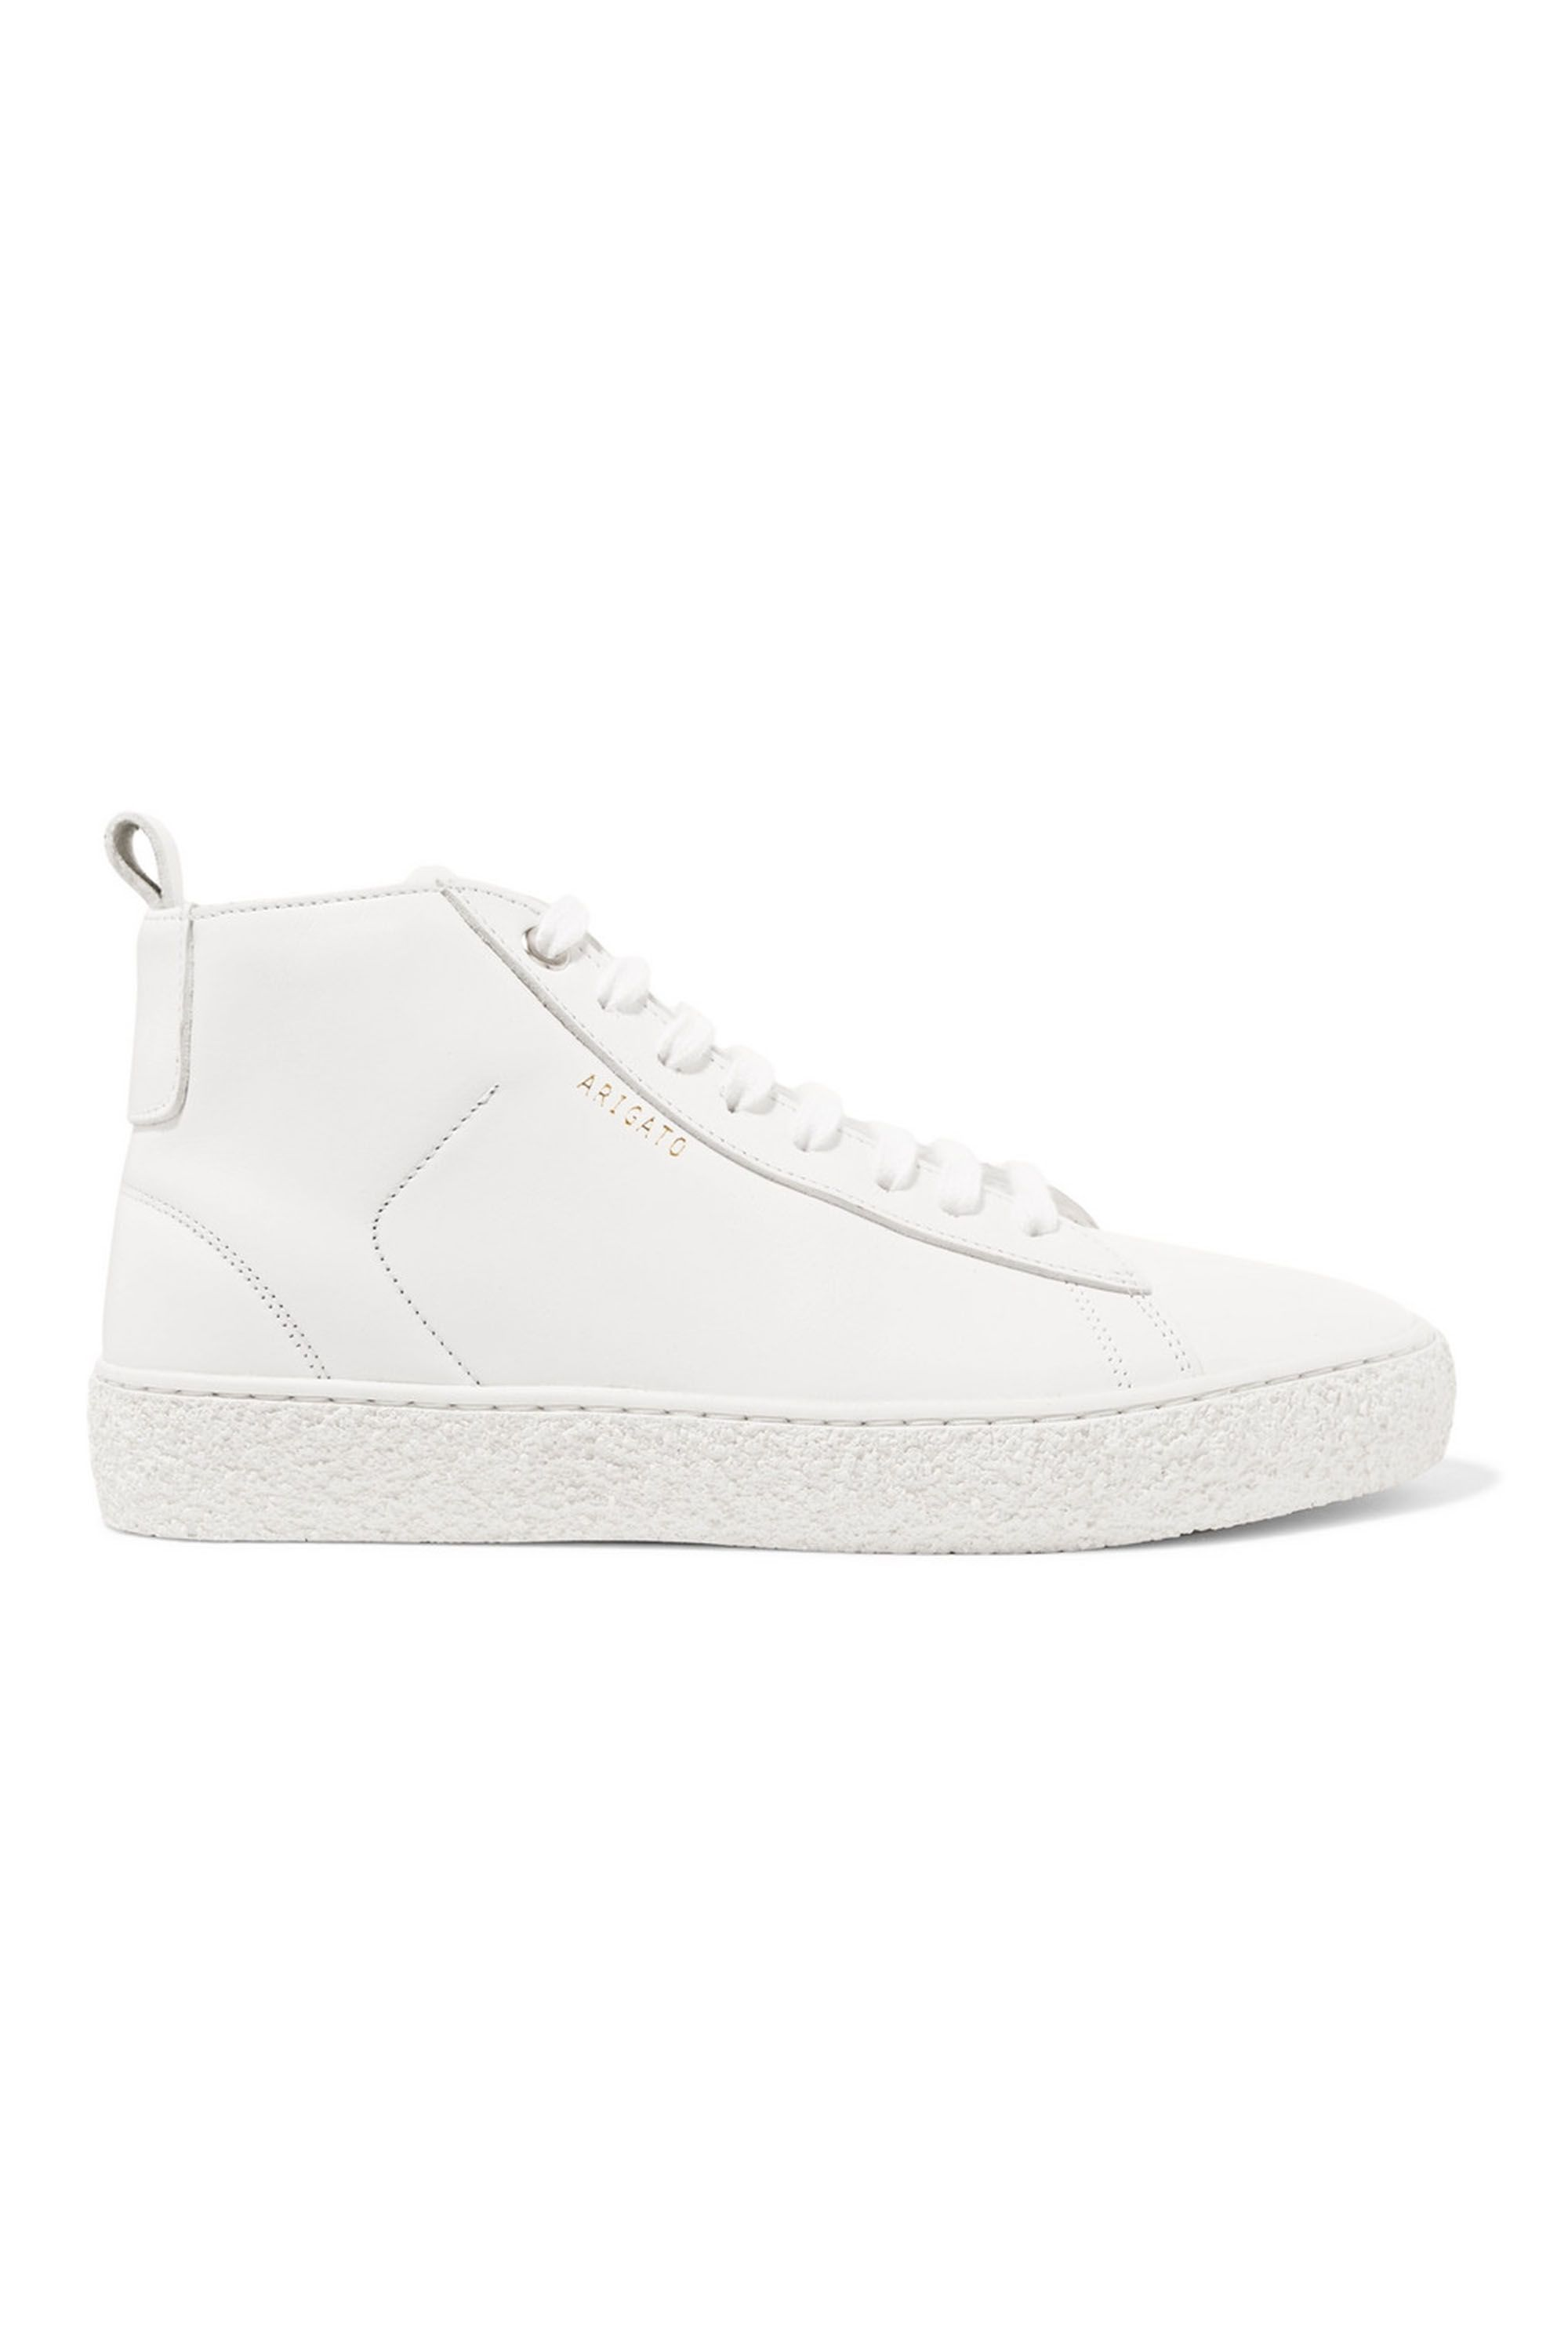 26 Best White Sneakers for 2018 - Classic White Shoes That Go With  Everything f24a7e4f5